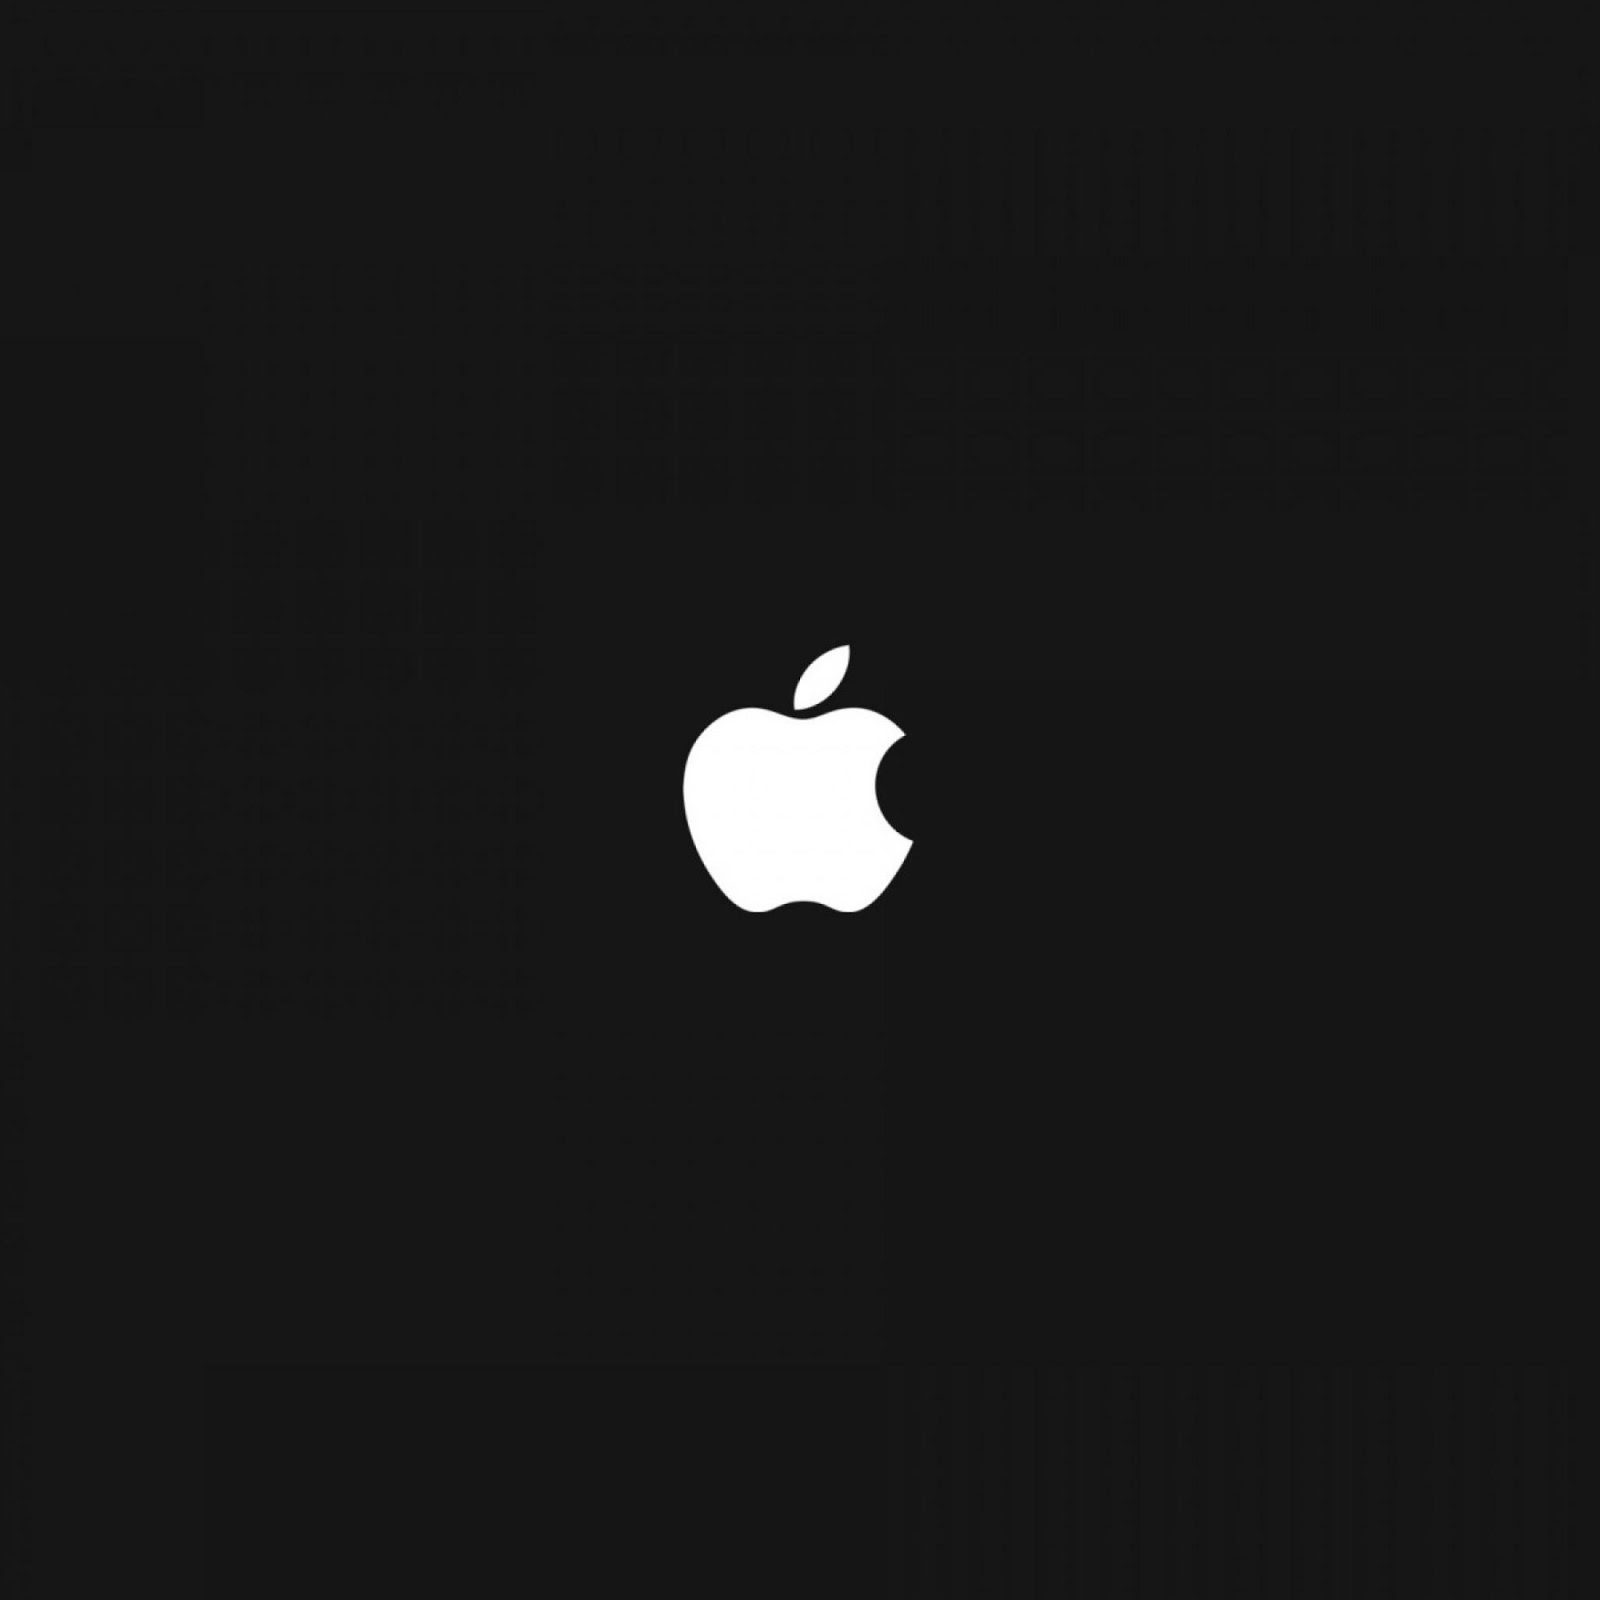 White Minimal Apple Pro Wallpapers and iPad mini Wallpapers